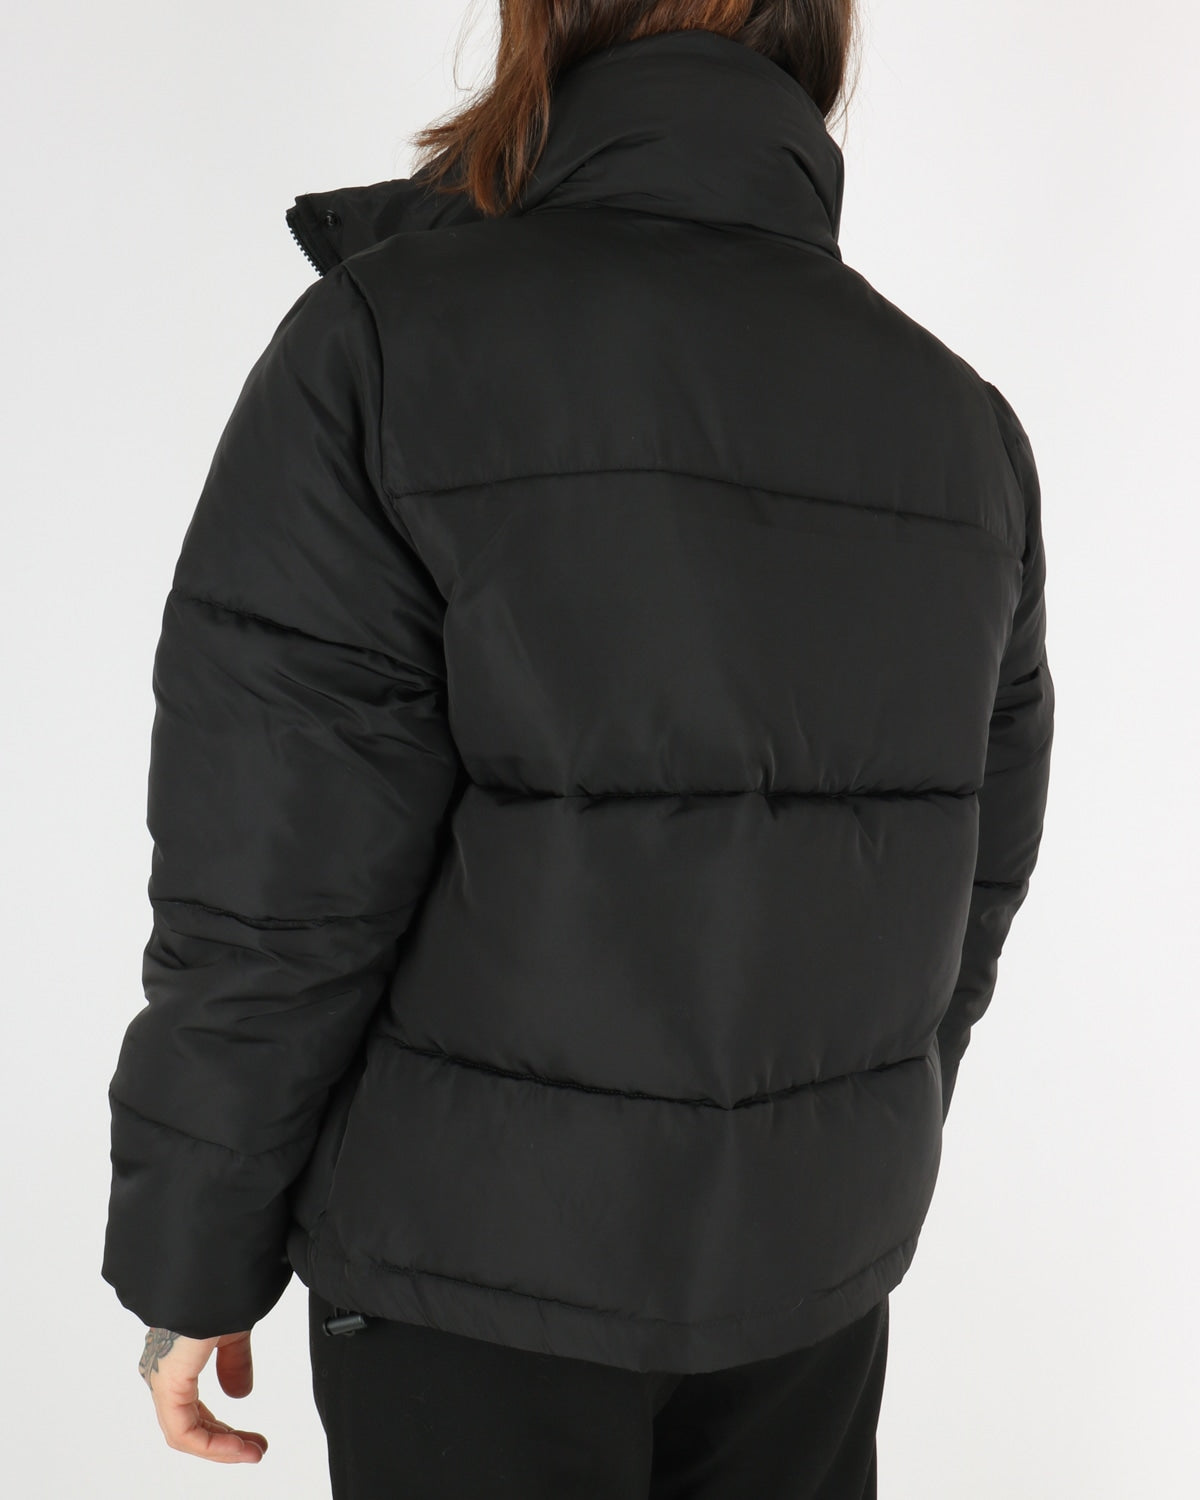 selfhood_puffer jacket 77126_black_2_5